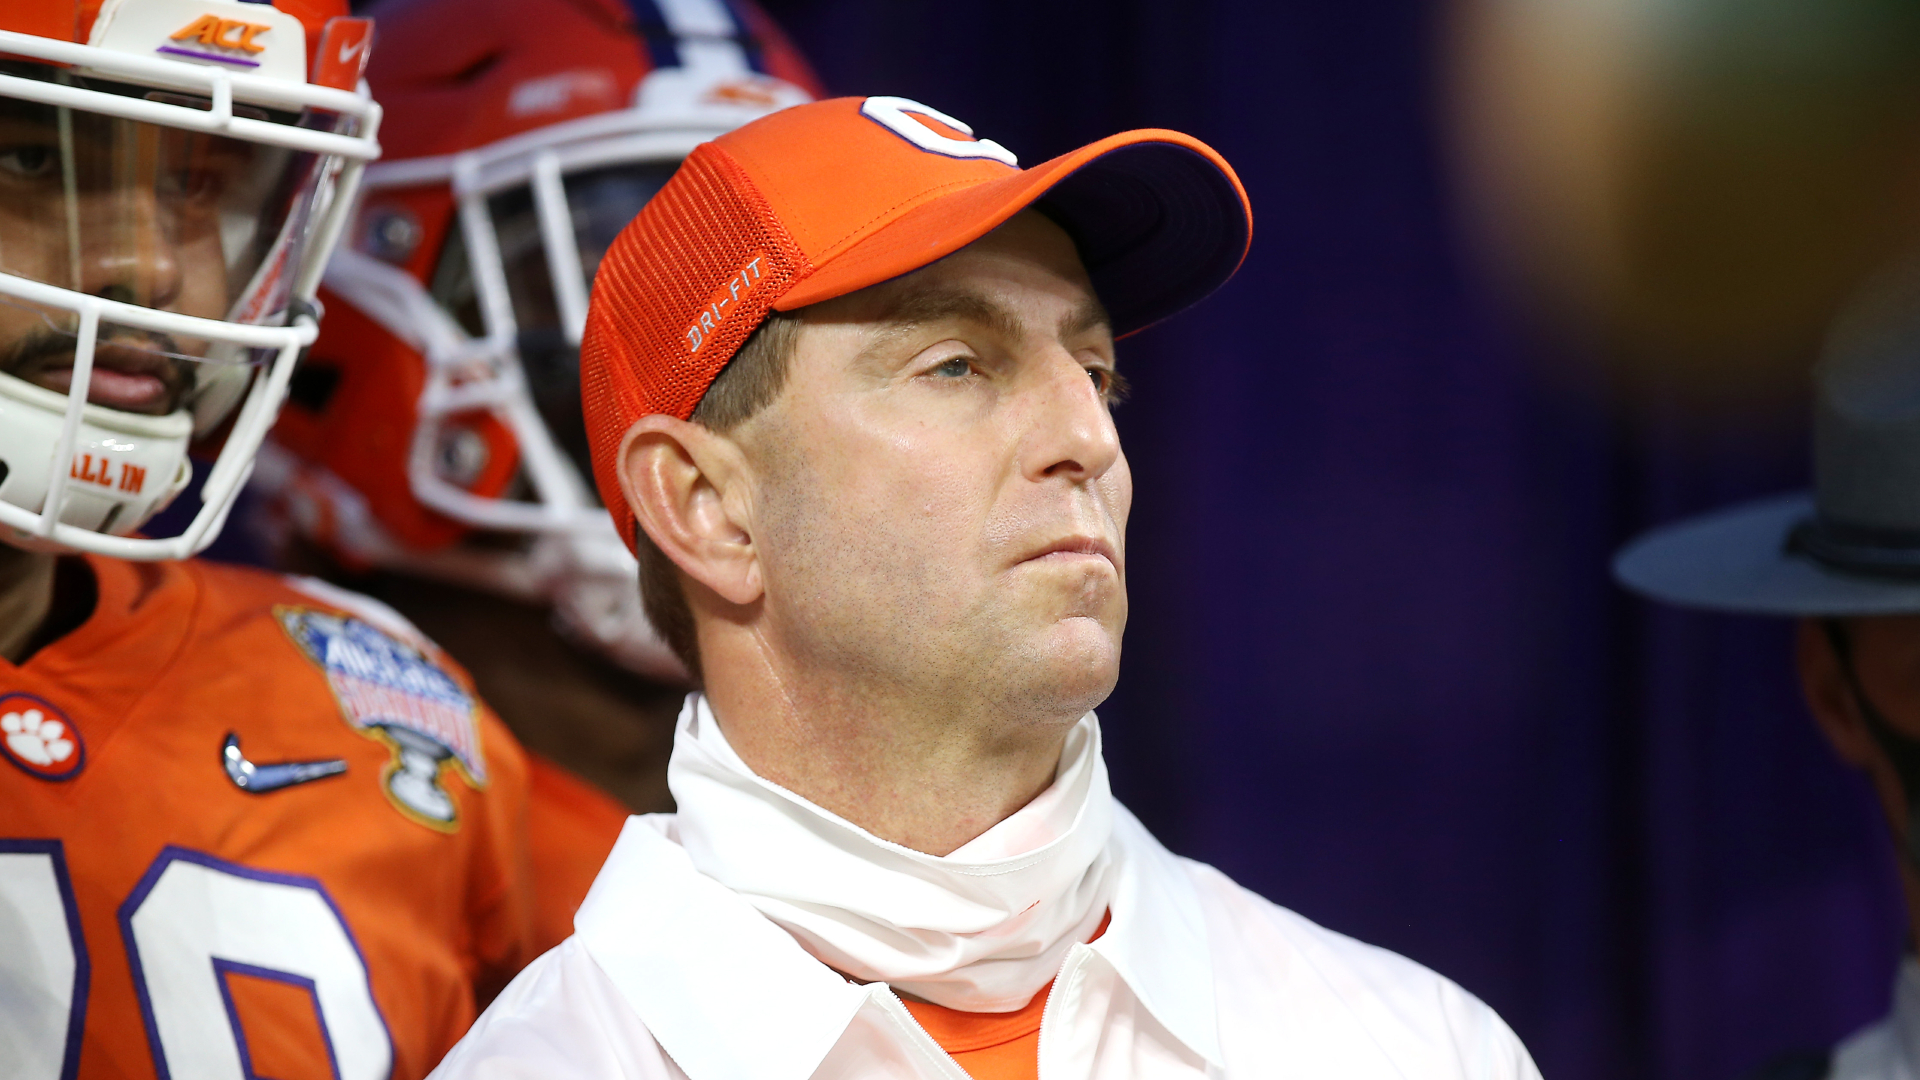 Dabo Swinney roasted for Ohio State ranking after Buckeyes embarrass Clemson in Sugar Bowl